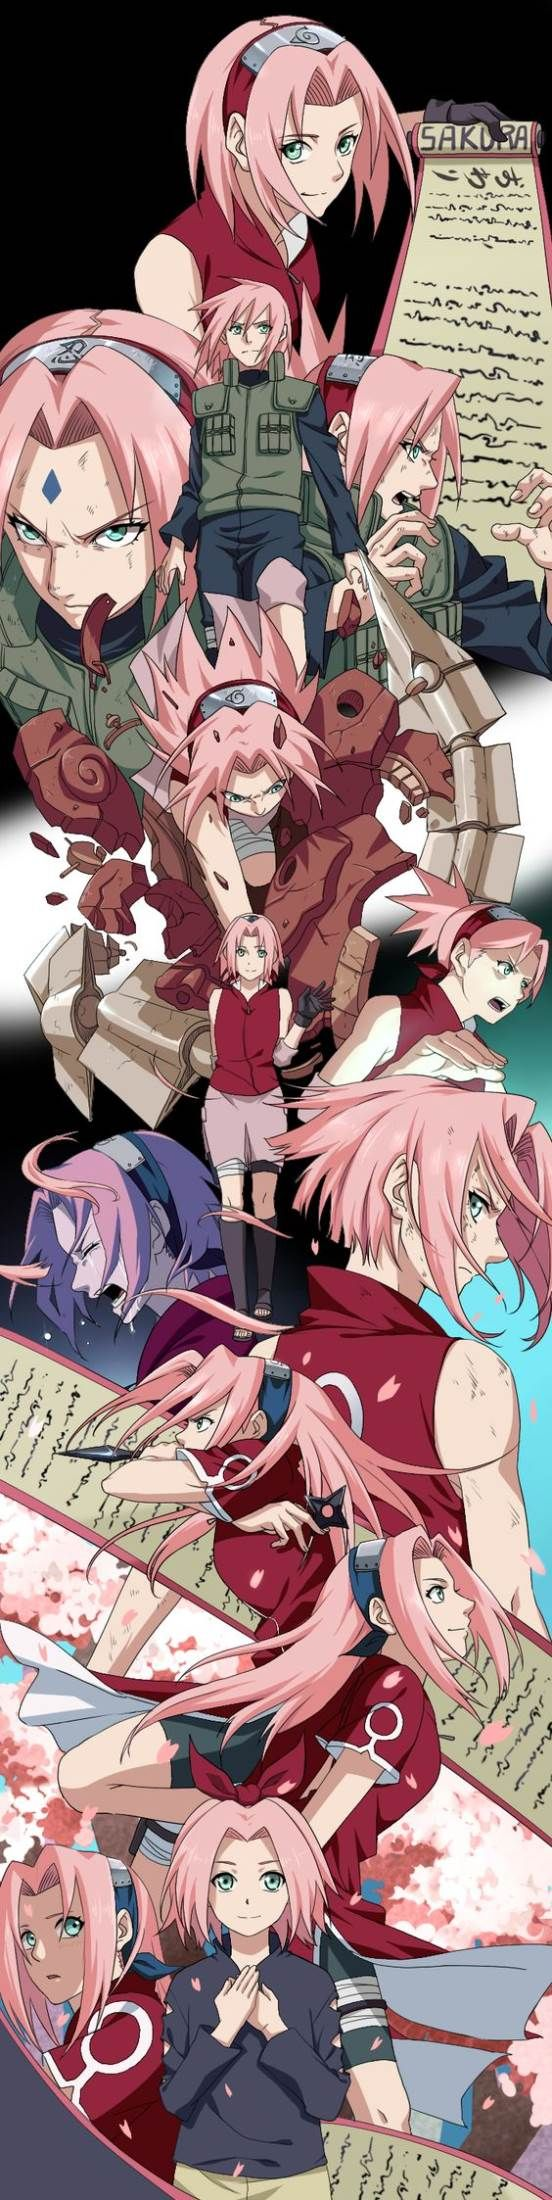 NARUTO SHIPPUDEN, Haruno Sakura (How To Get Him To Propose Dreams)